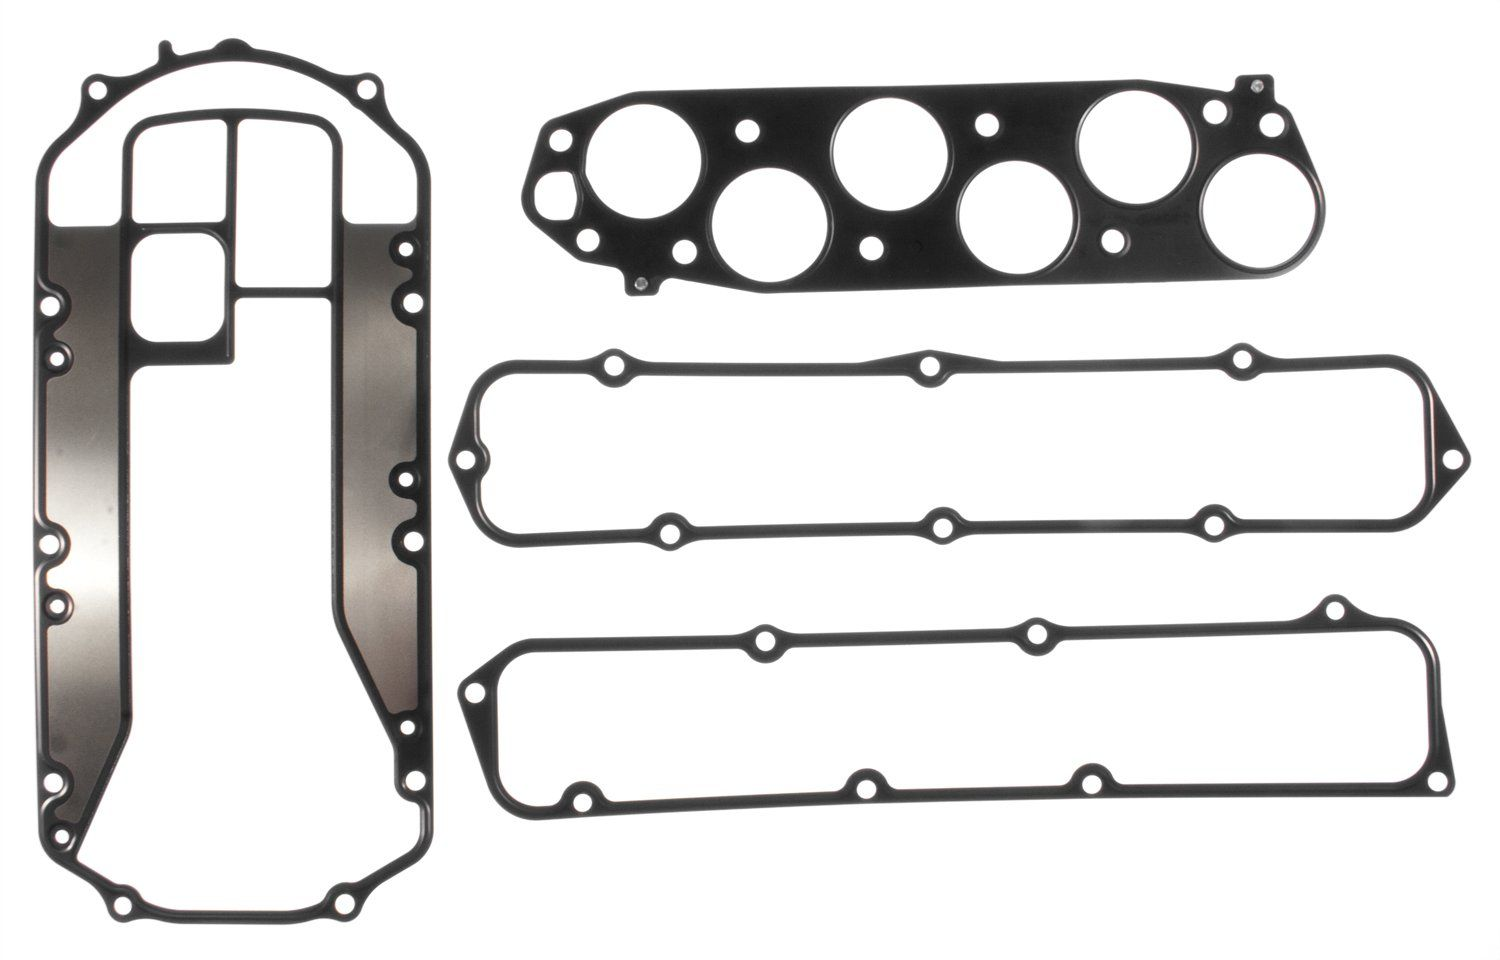 2000 Acura TL Fuel Injection Plenum Gasket 6 Cyl 3.2L (Victor Gaskets  MS19713) Rubber Coated Beaded Steel .